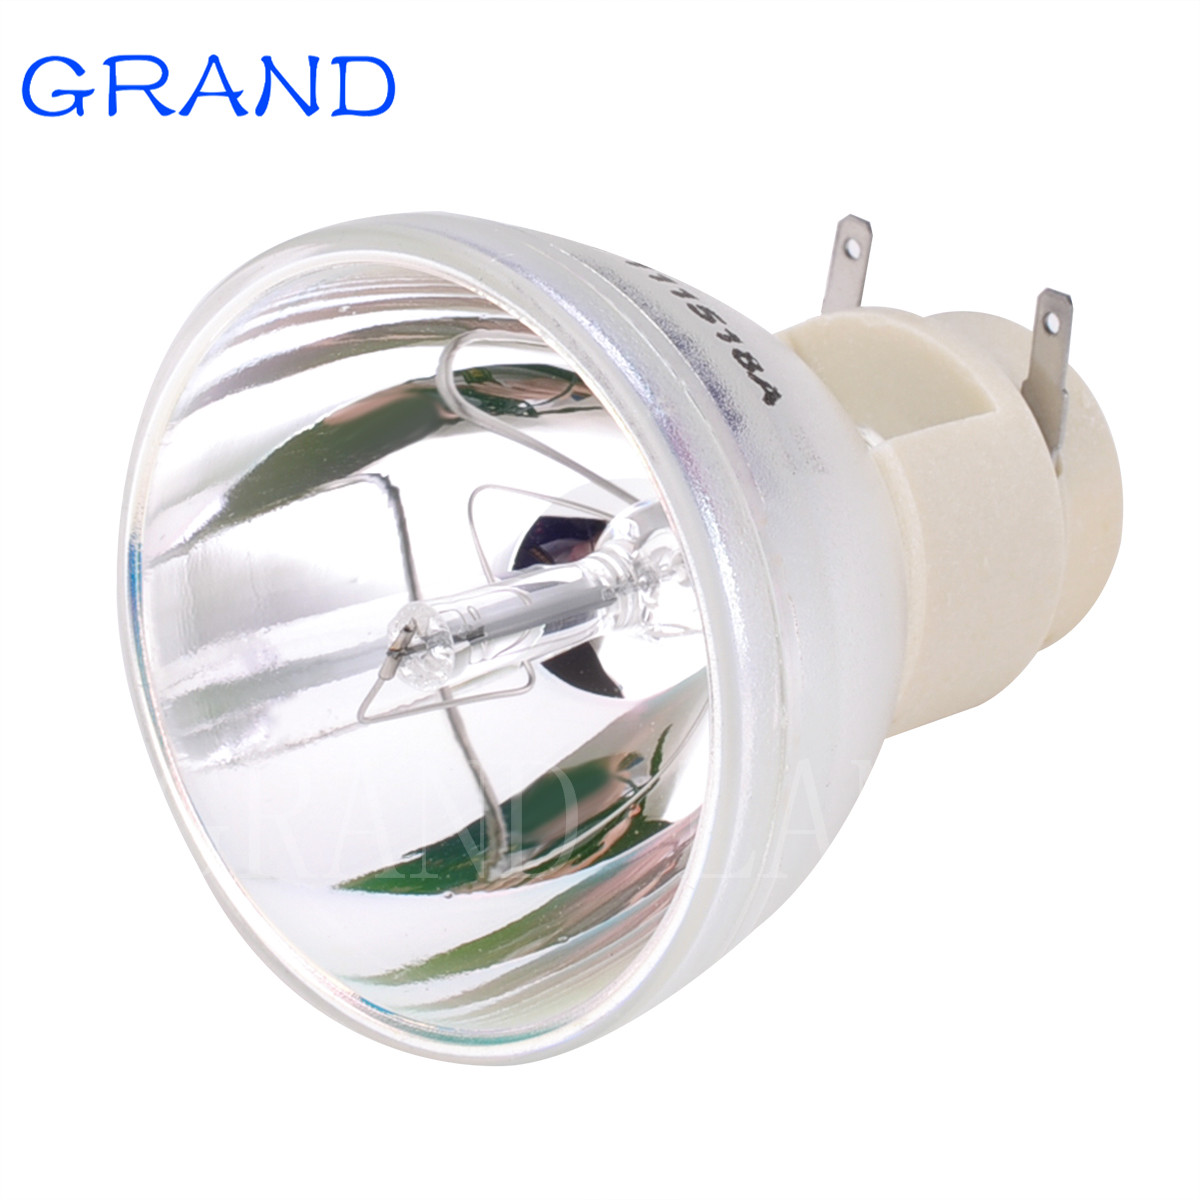 Compatible DE2005 P-VIP 180/0.8 E20.8 Projector Lamp Bulb For Optoma S711ST EX605ST Projector Lamp Bulb